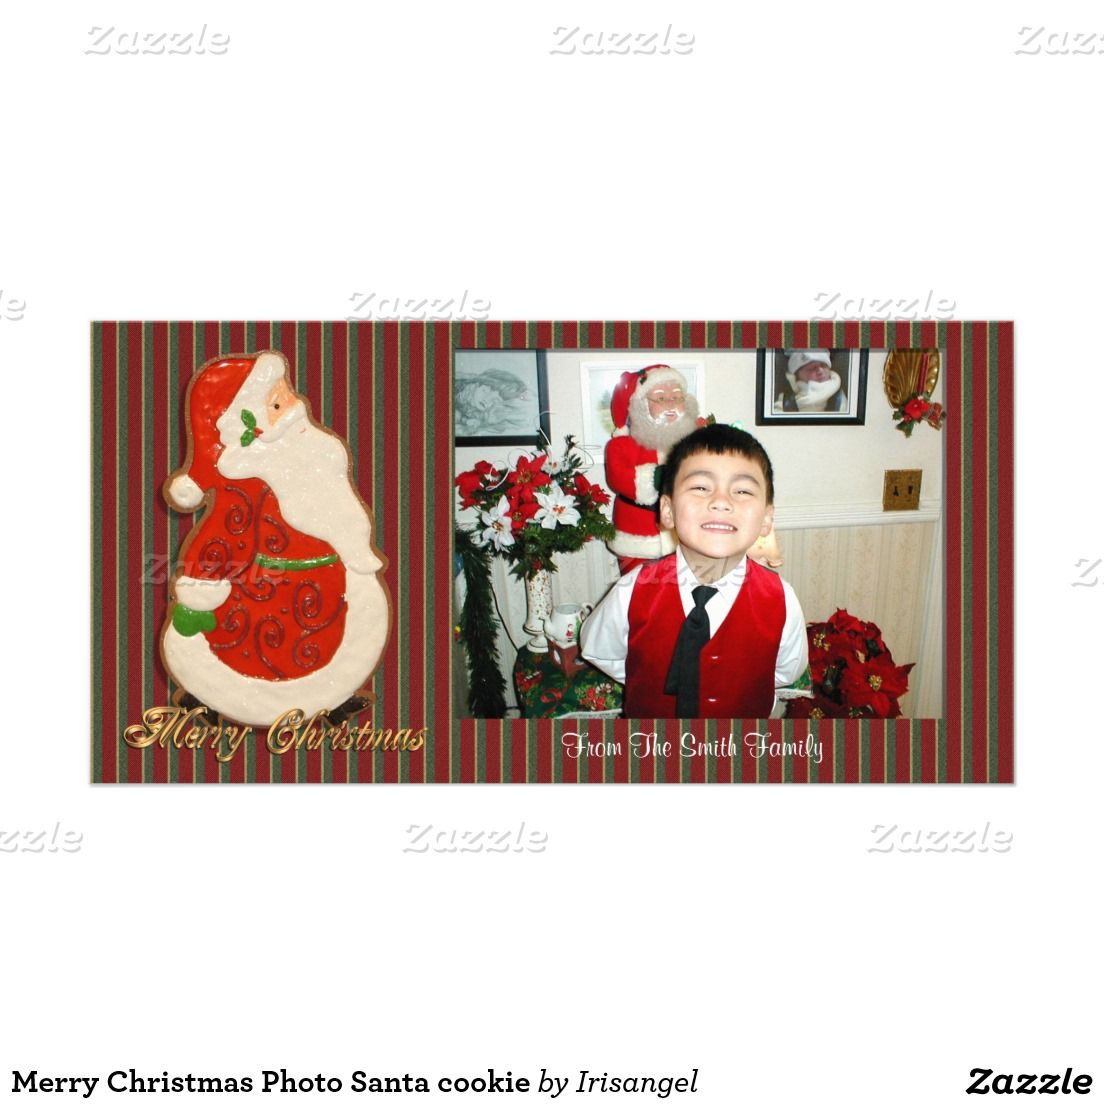 Merry Christmas Photo Santa cookie Photo Card